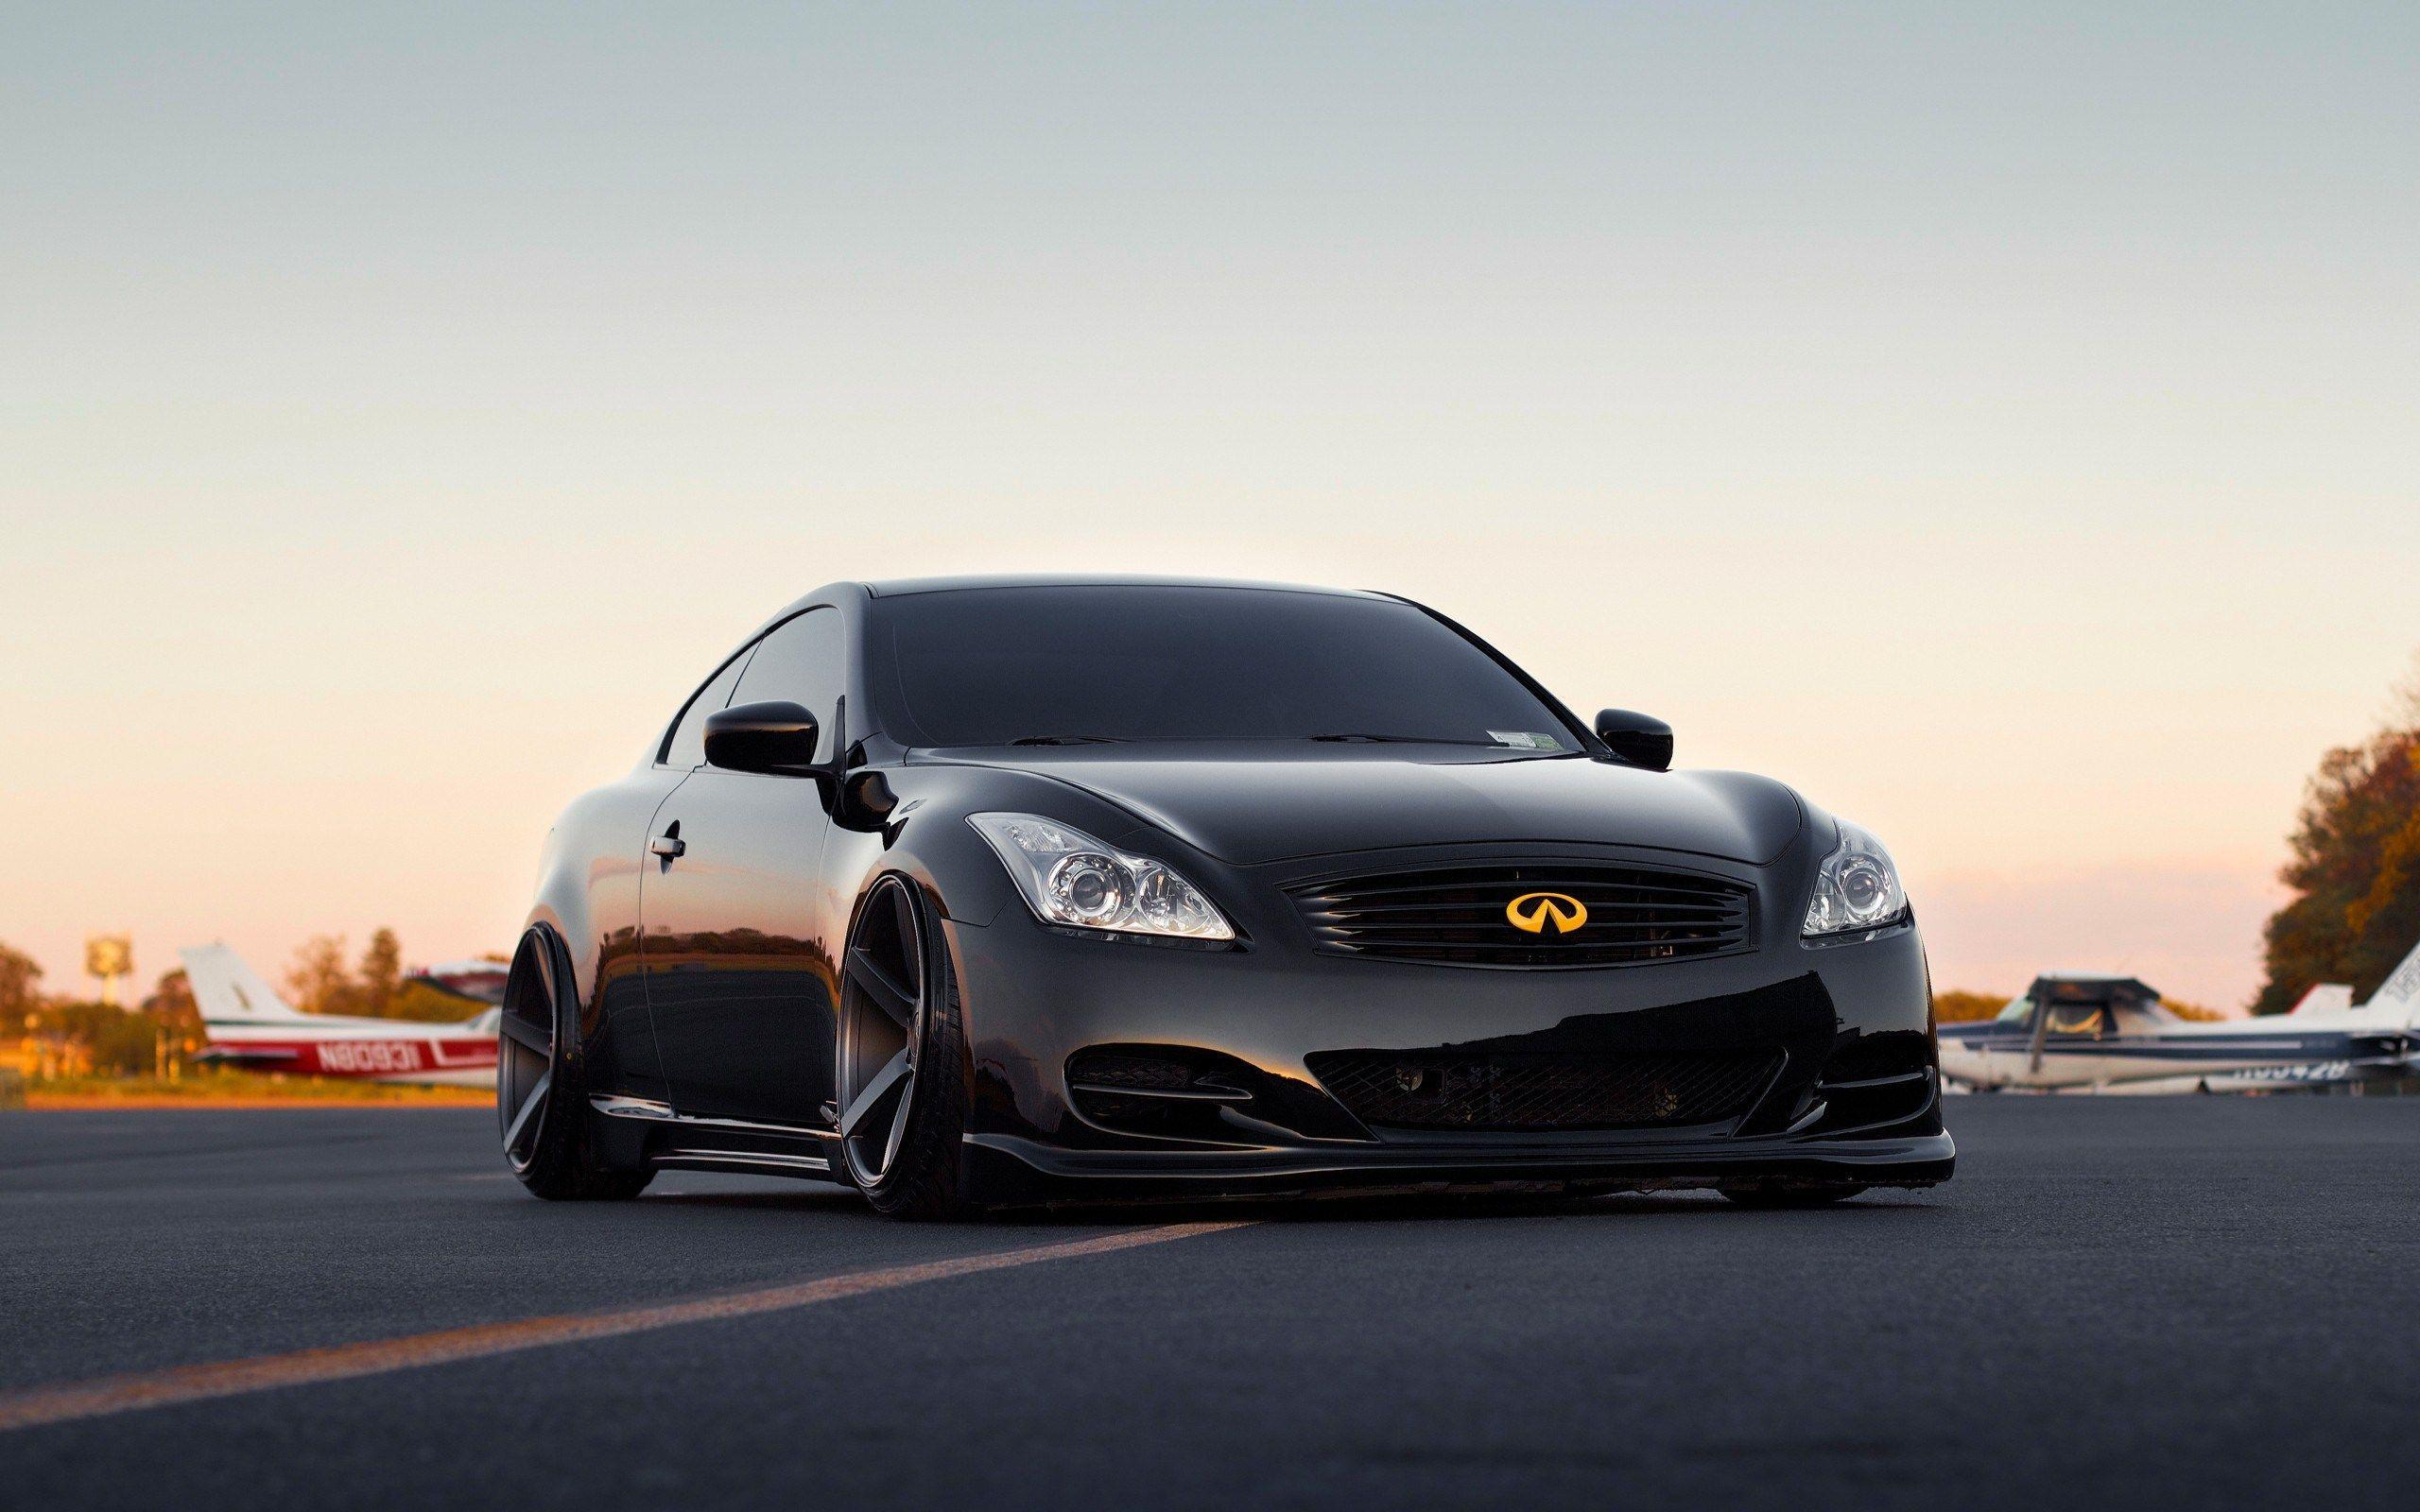 Black Infiniti G37 Coupe Tuning Dramatic Car Wide Hd Wallpaper